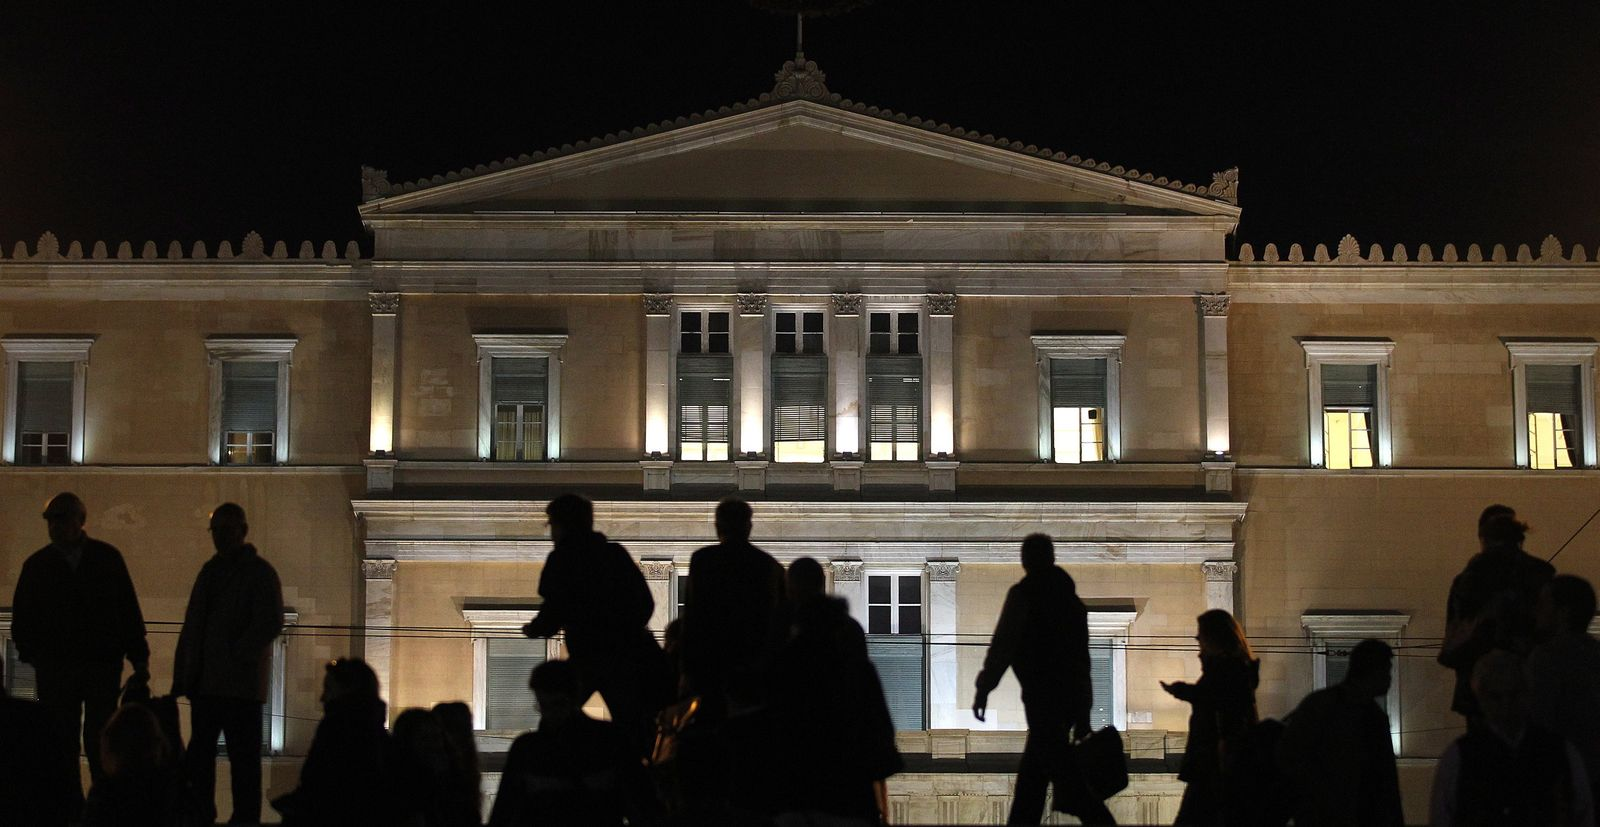 People walk in front of the Greek Parliament building in Athens